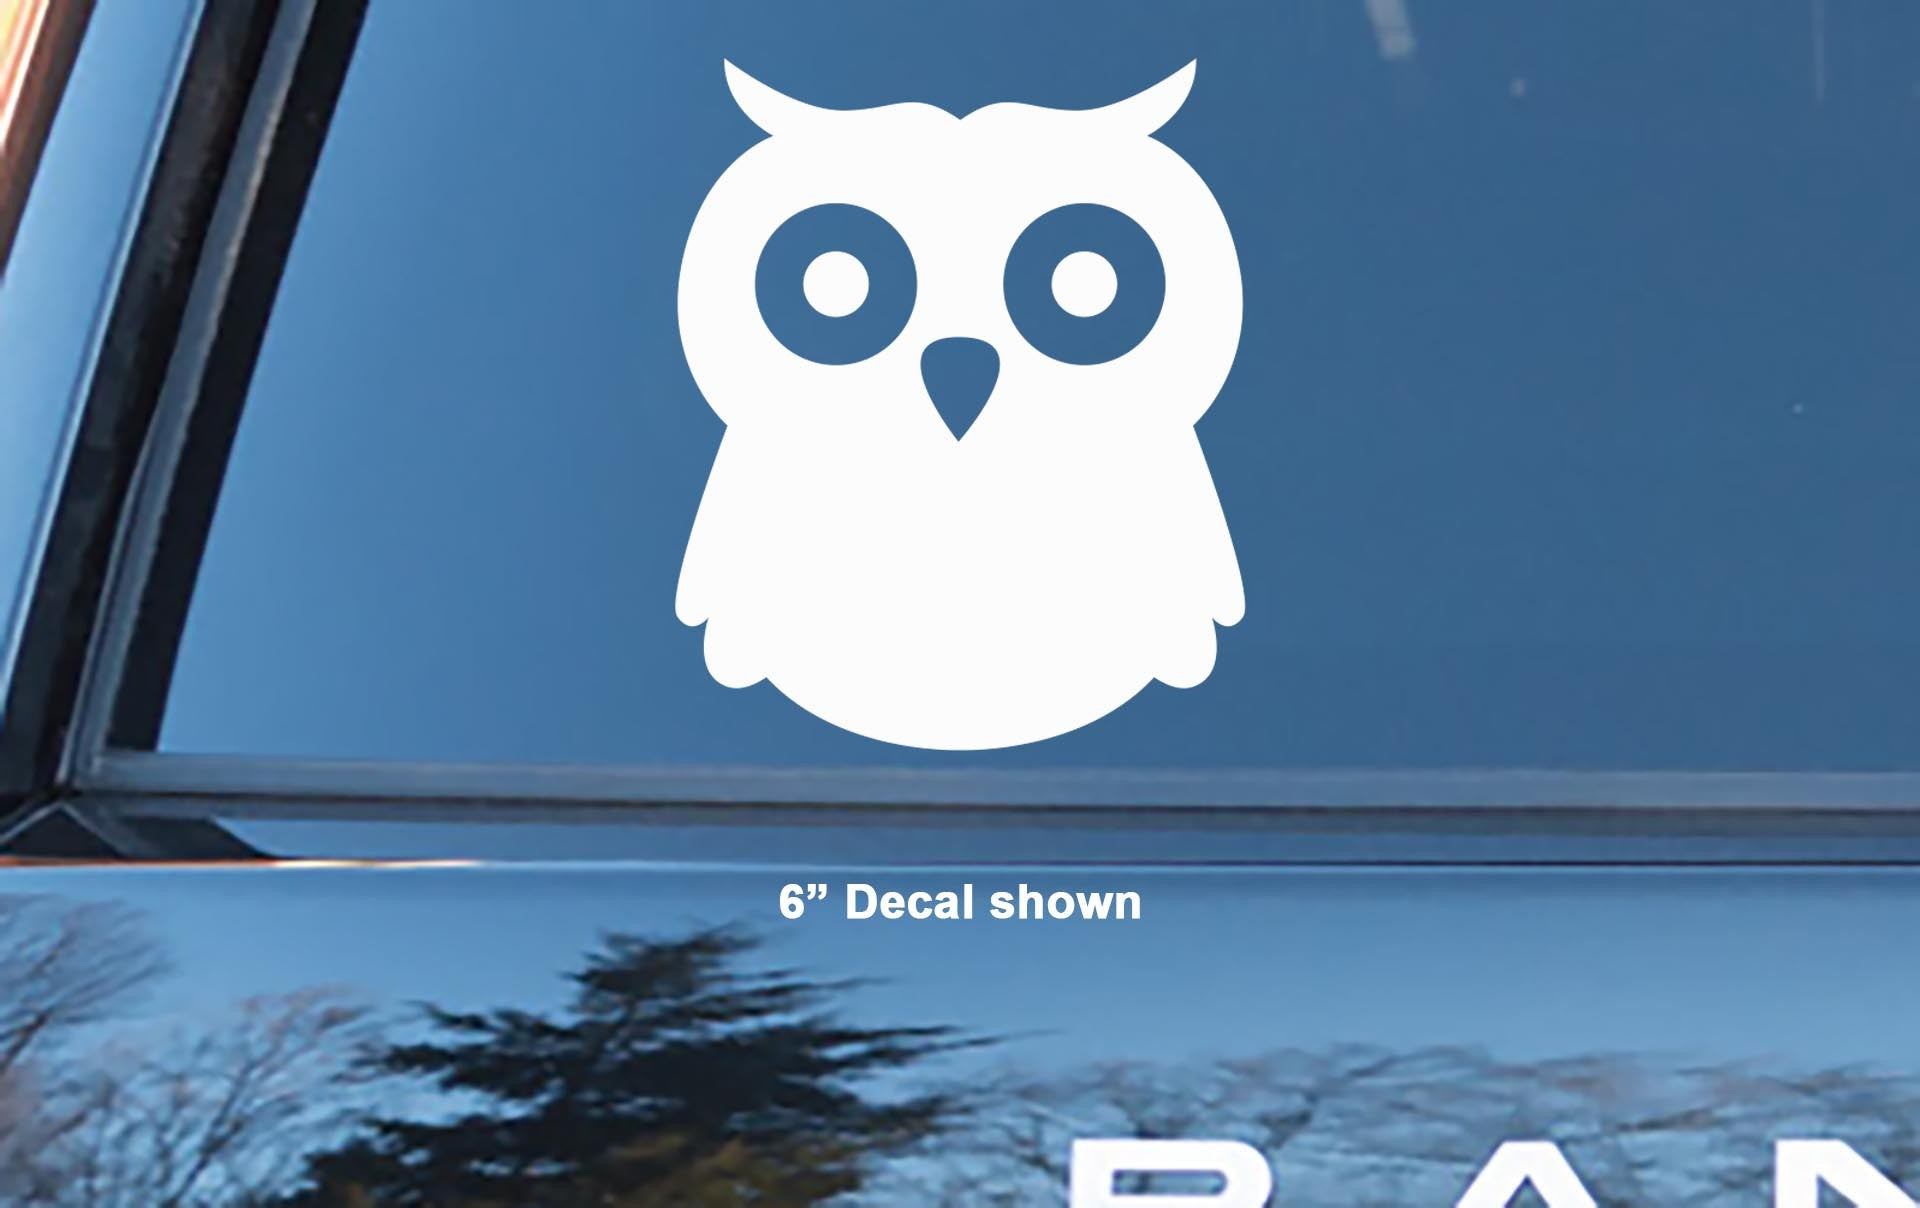 Baby Owl With Rounded Head And Big Eyes Vinyl Decal Sticker - Owl custom vinyl decals for car